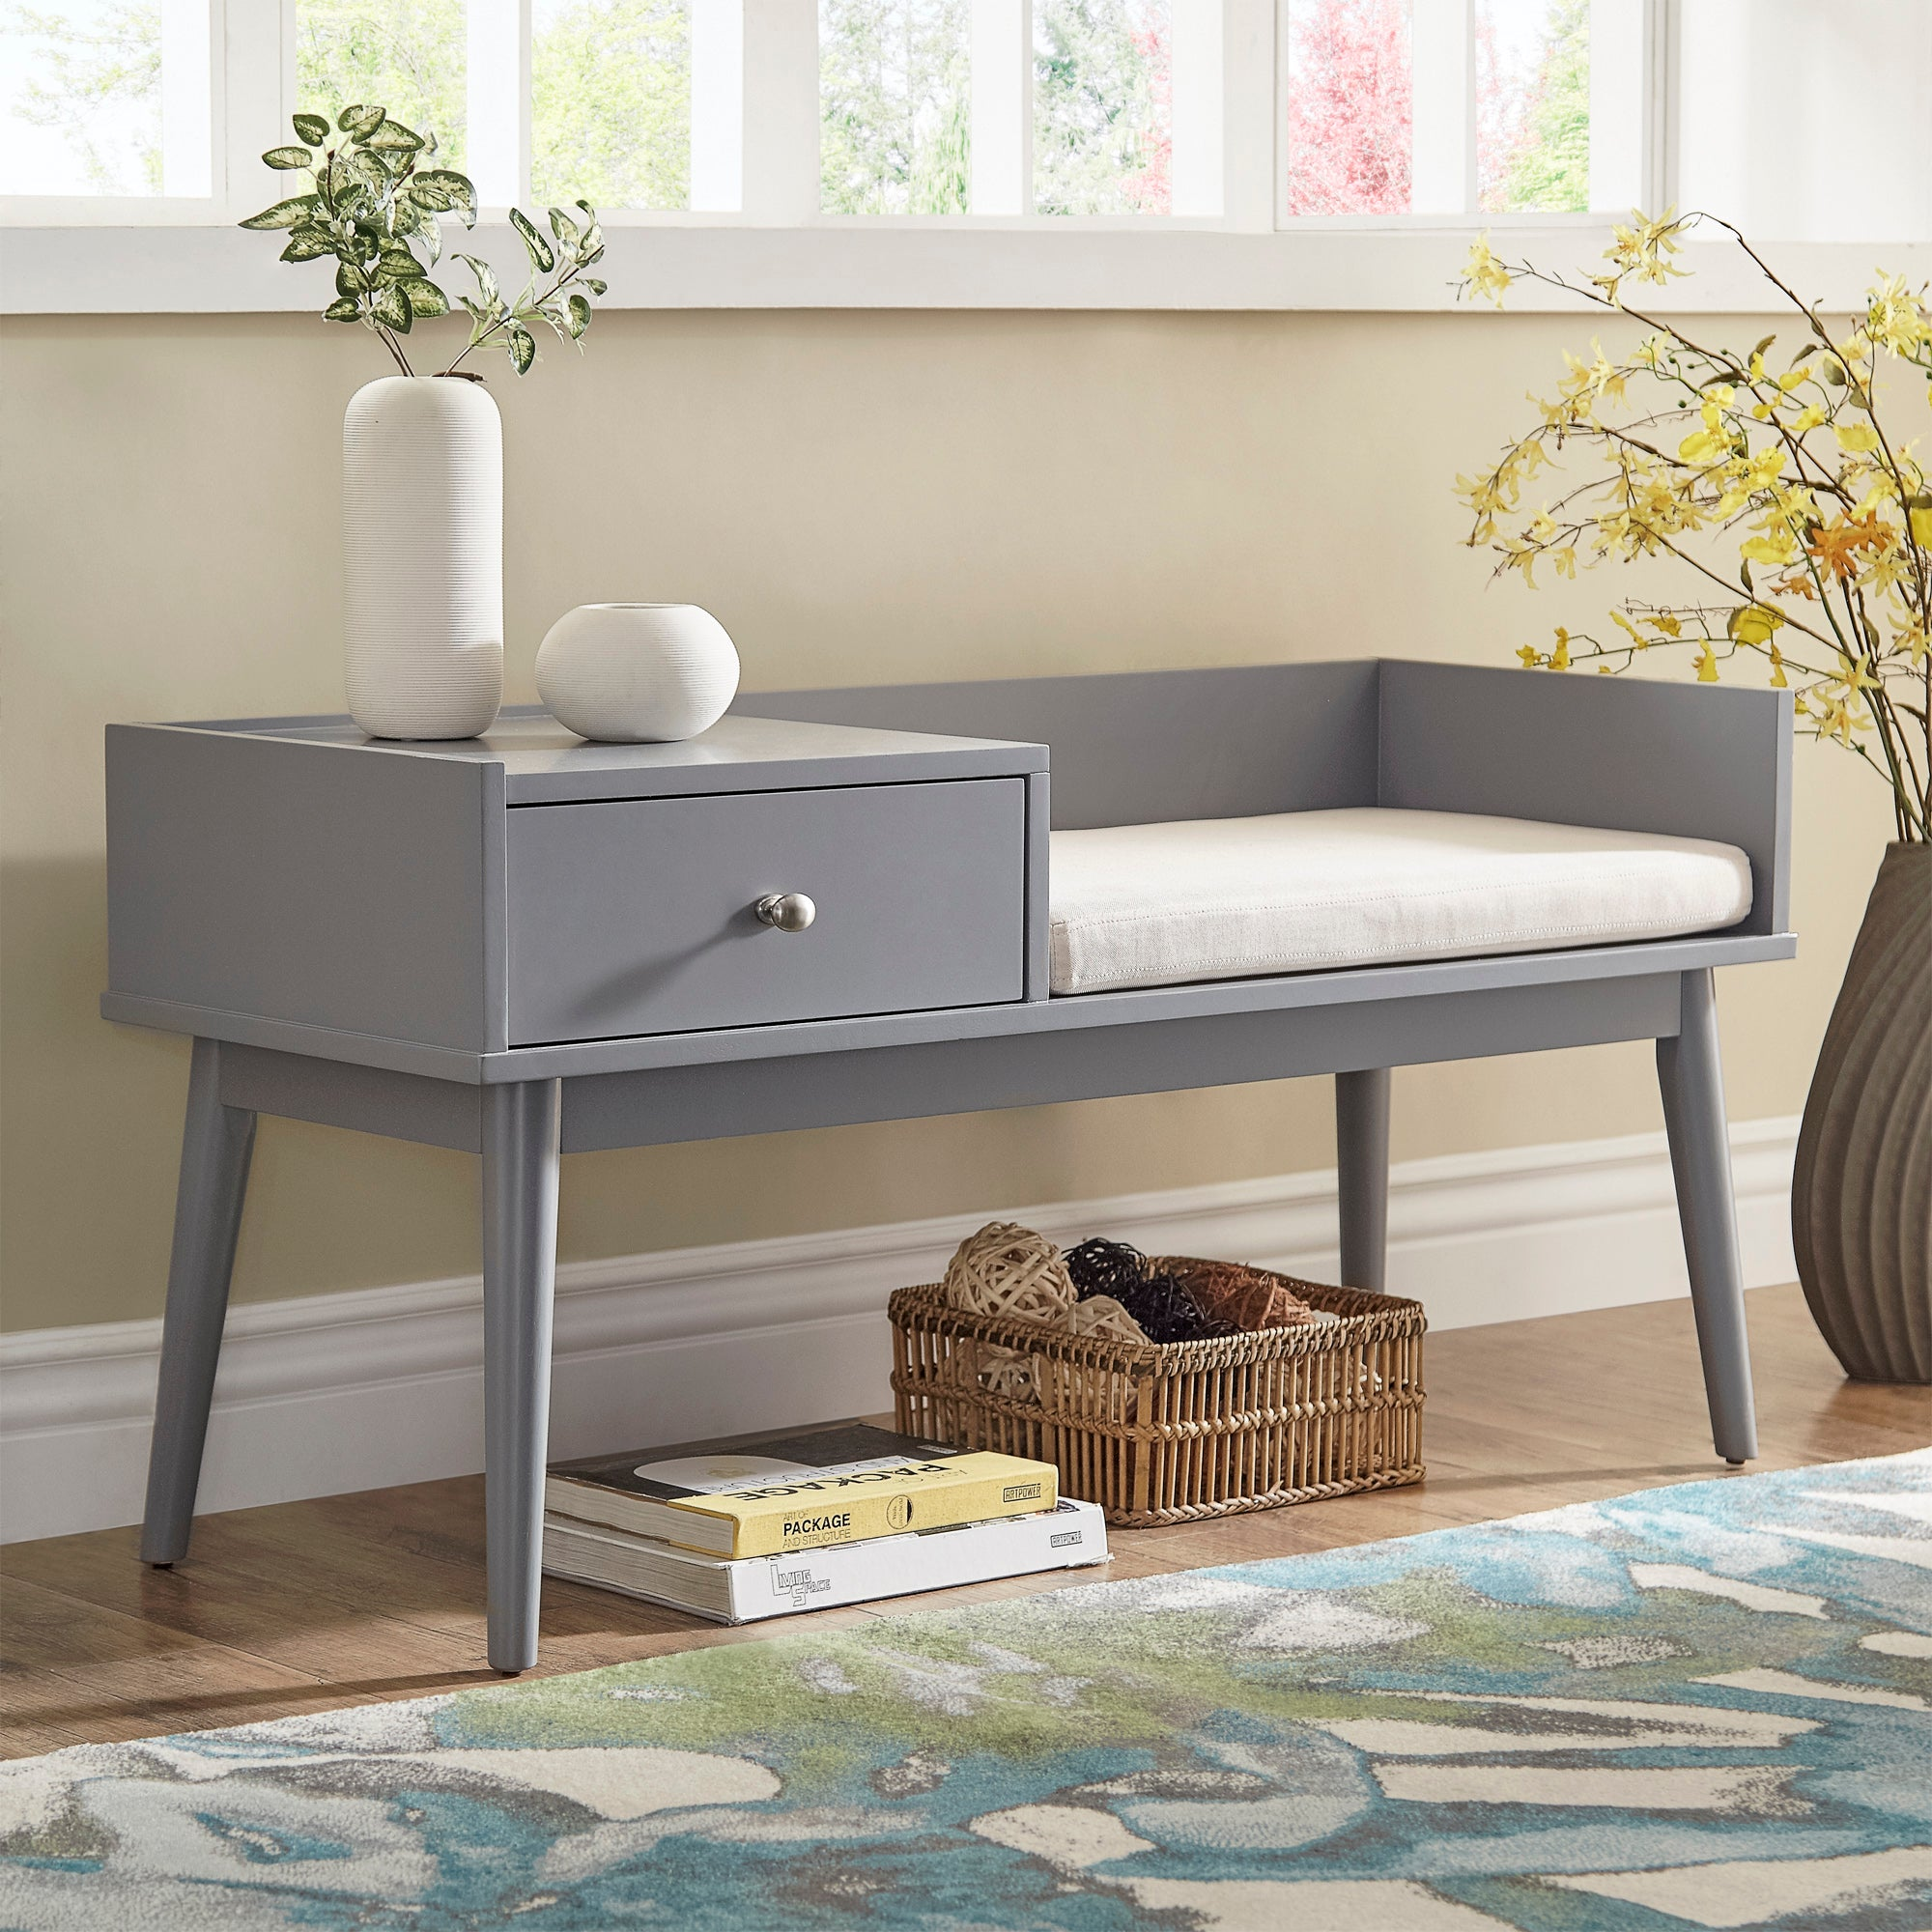 1-Drawer Cushioned Entryway Bench - Frost Grey